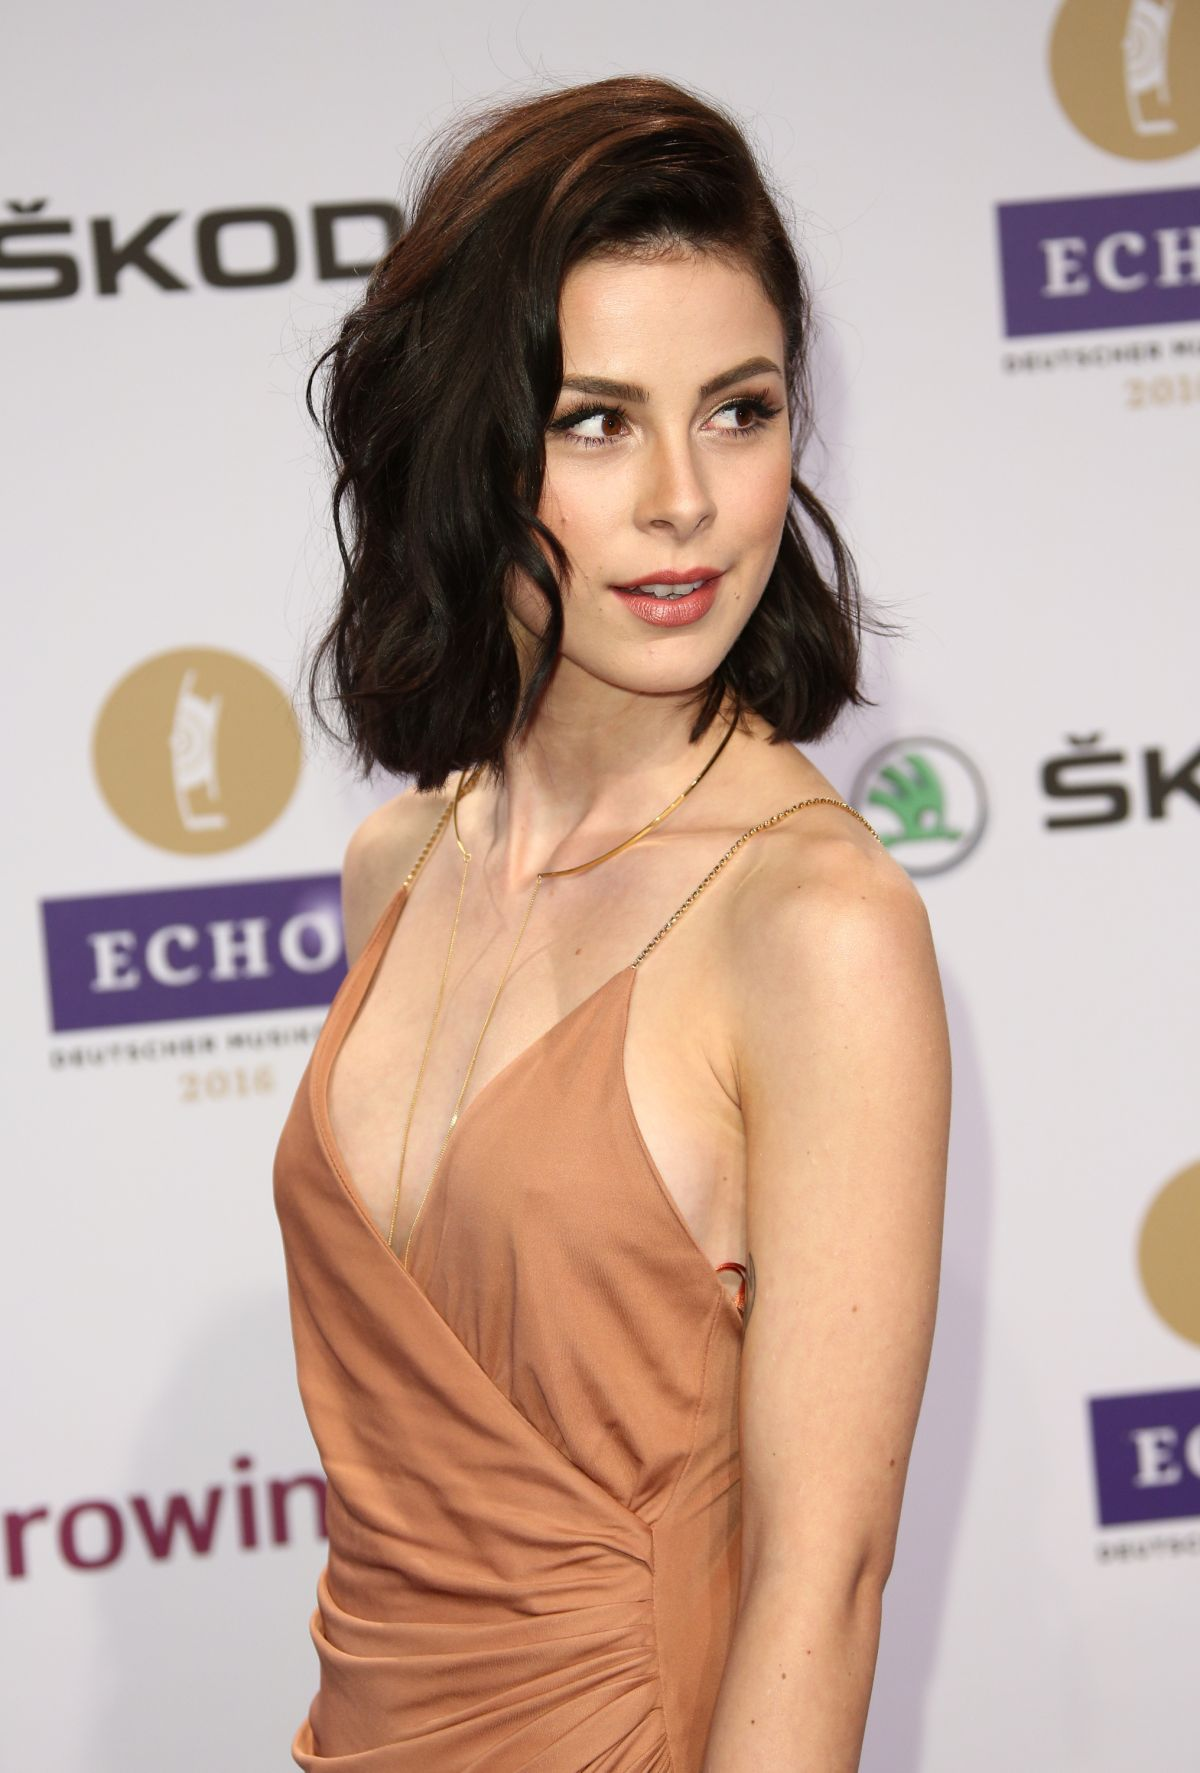 Hot and sexy German singer Lena Meyer-Landrut